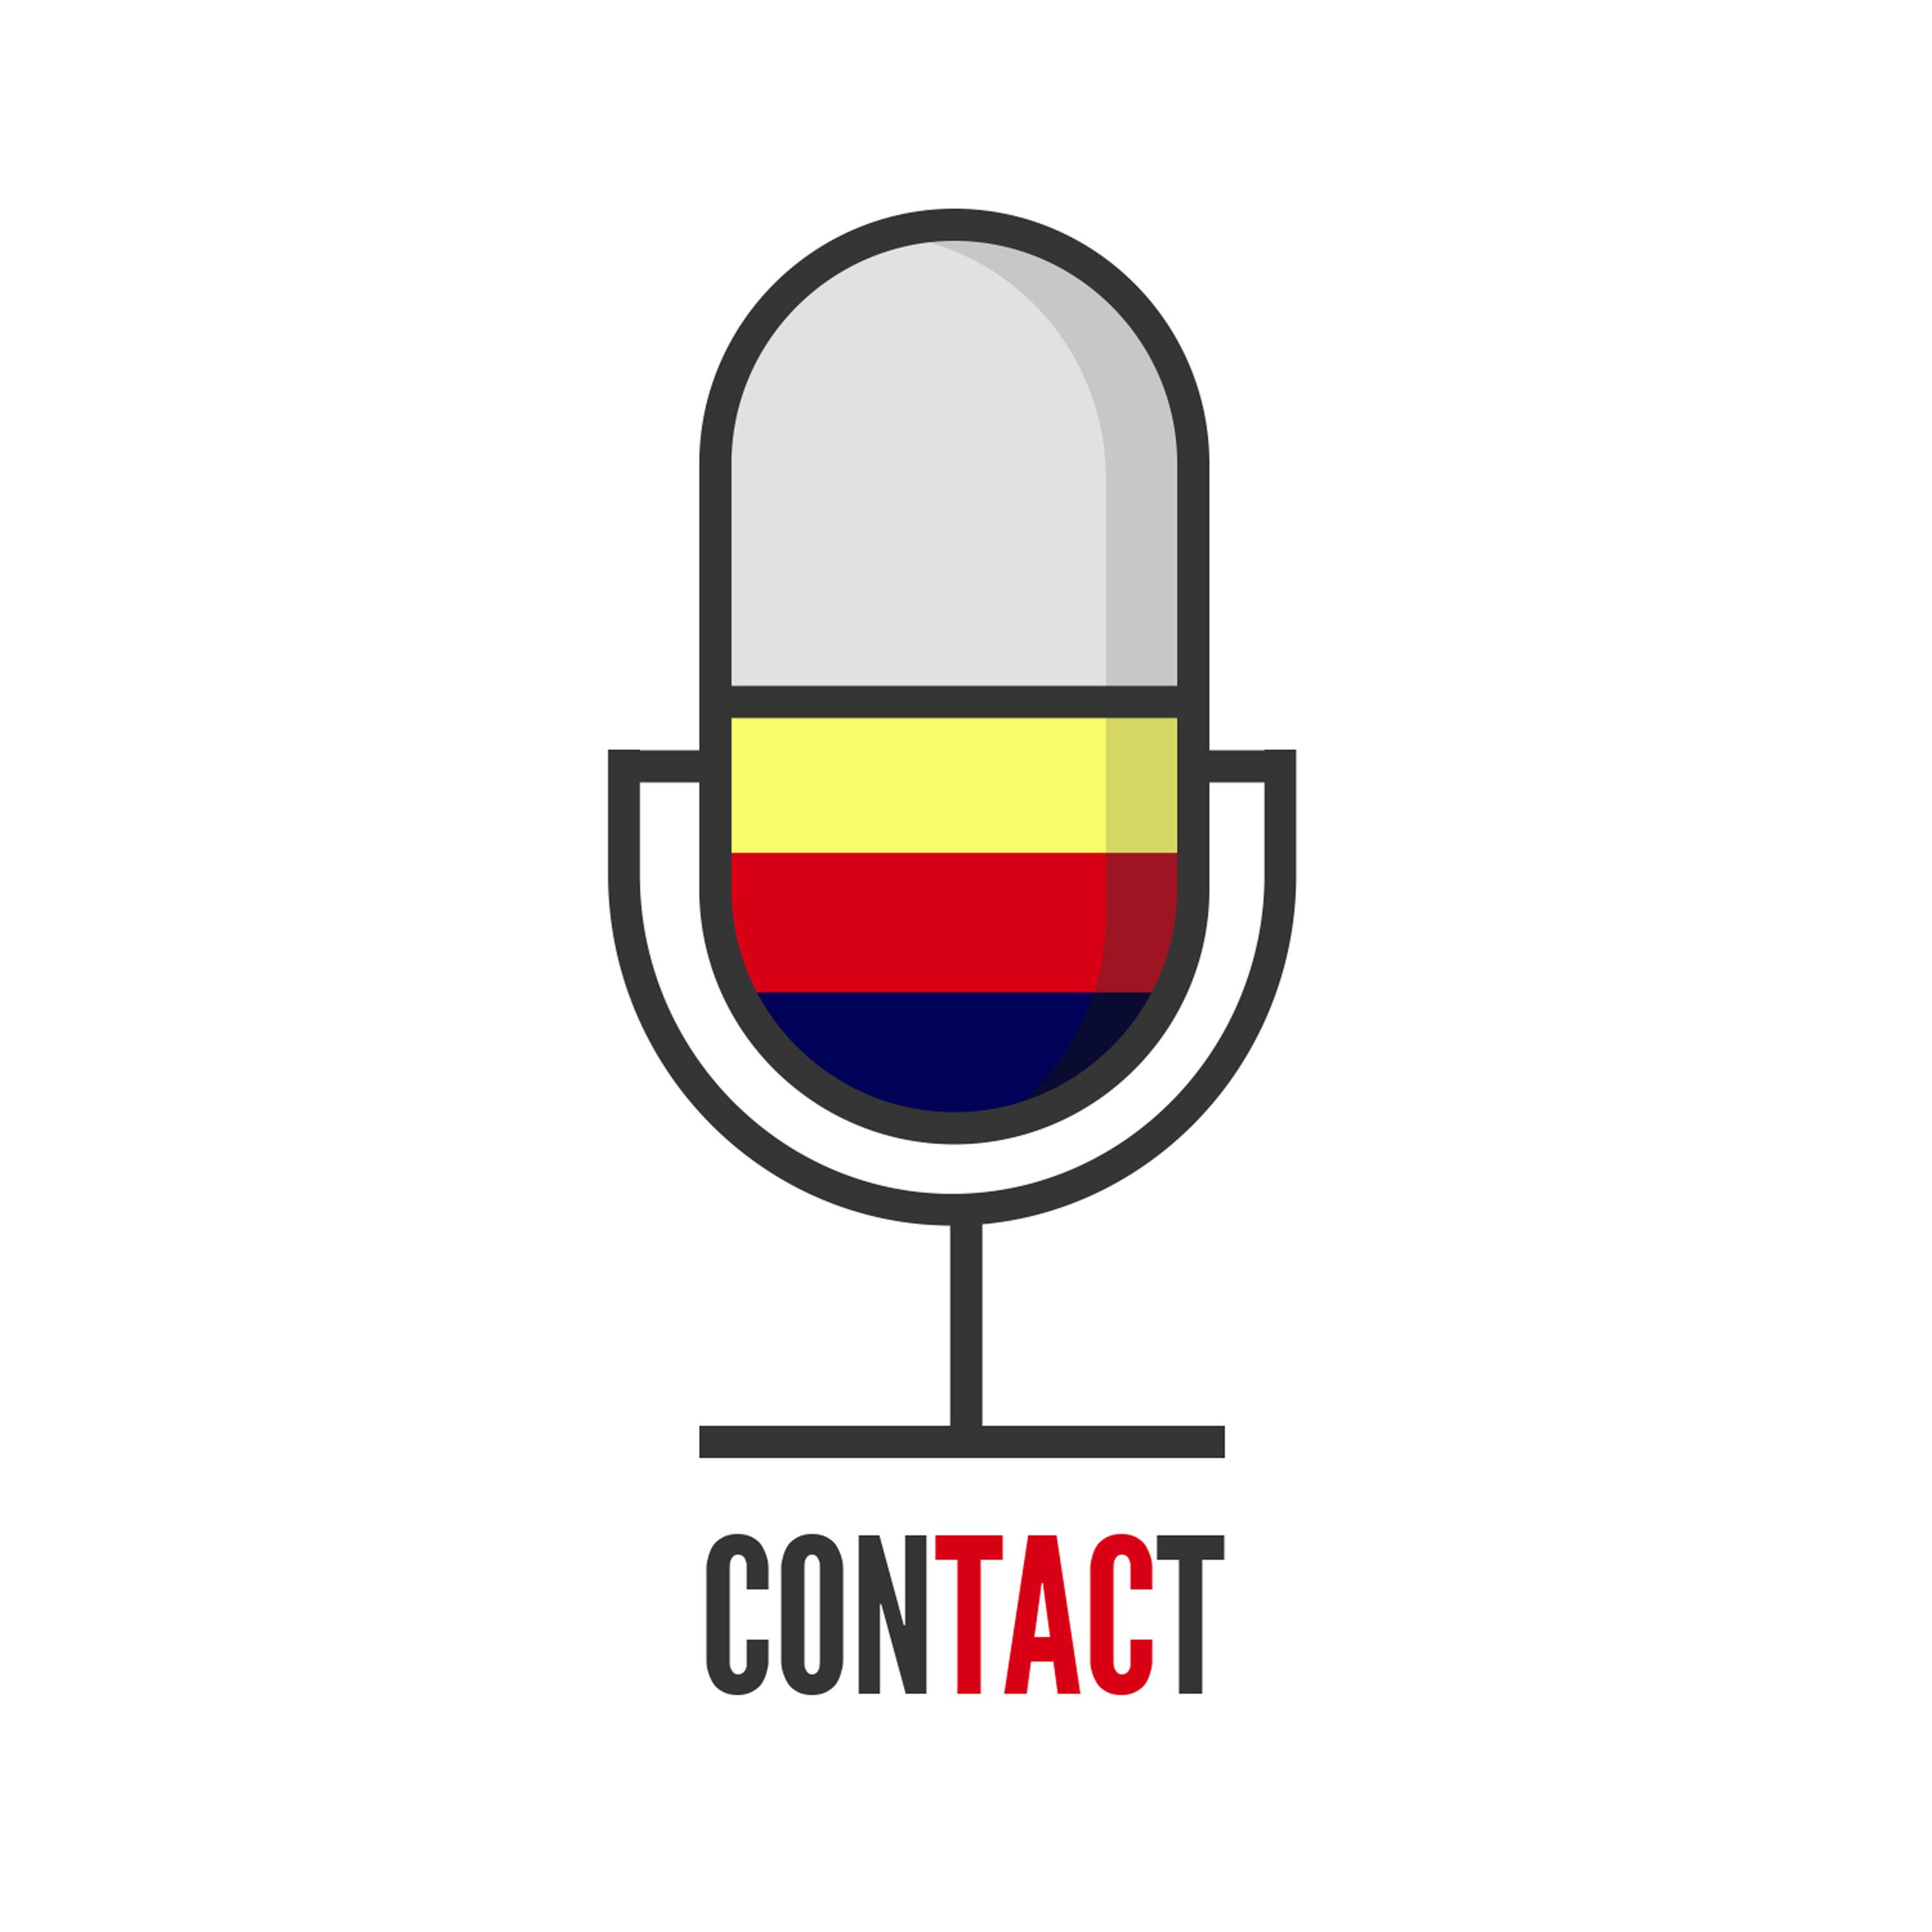 Contact Podcast